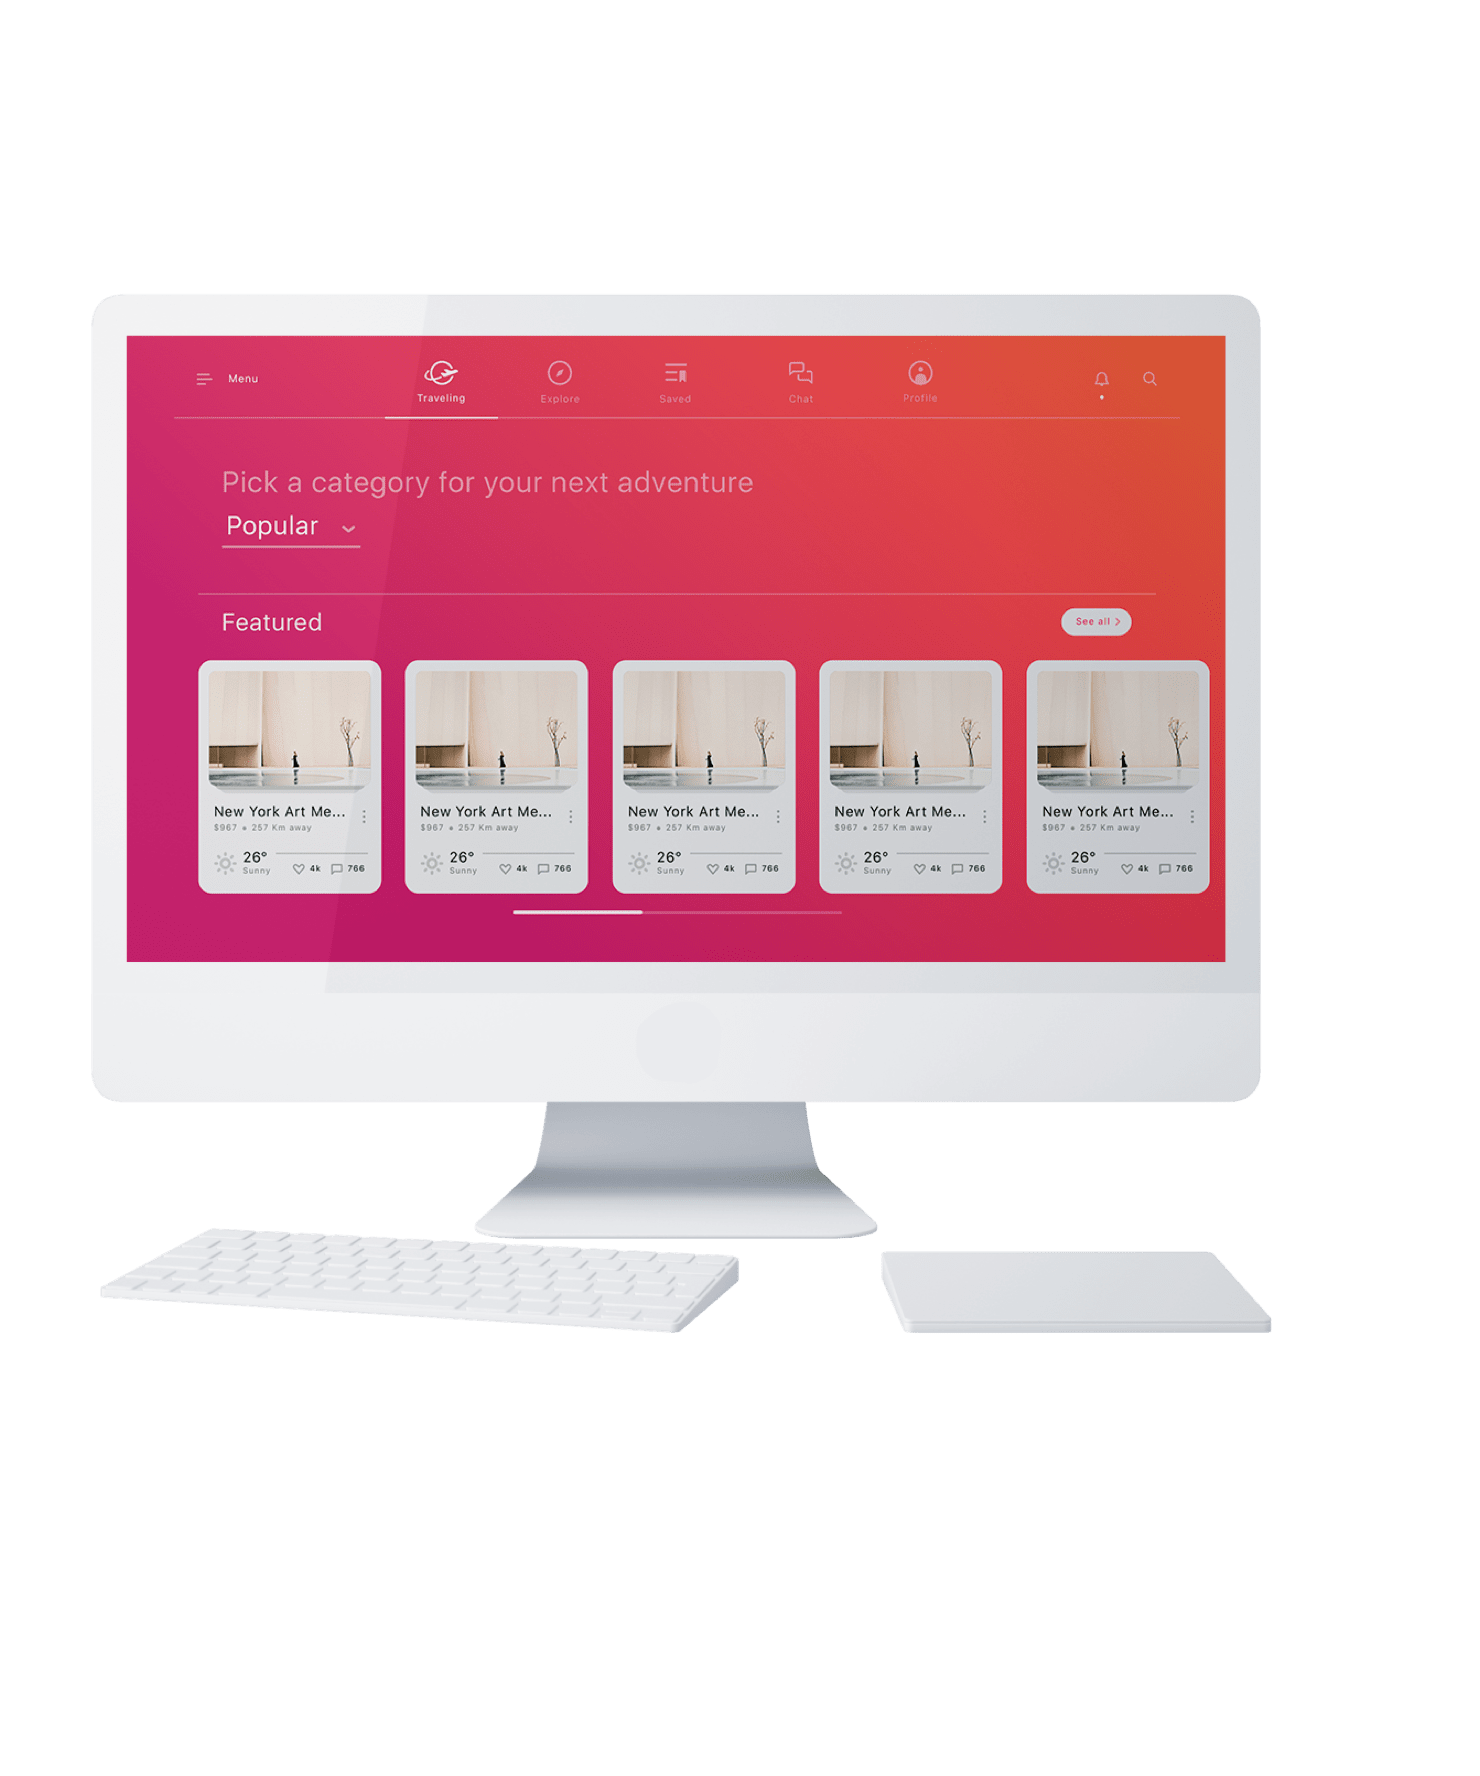 Begin your adventure with Atlas, a travel app UI kit from InVision